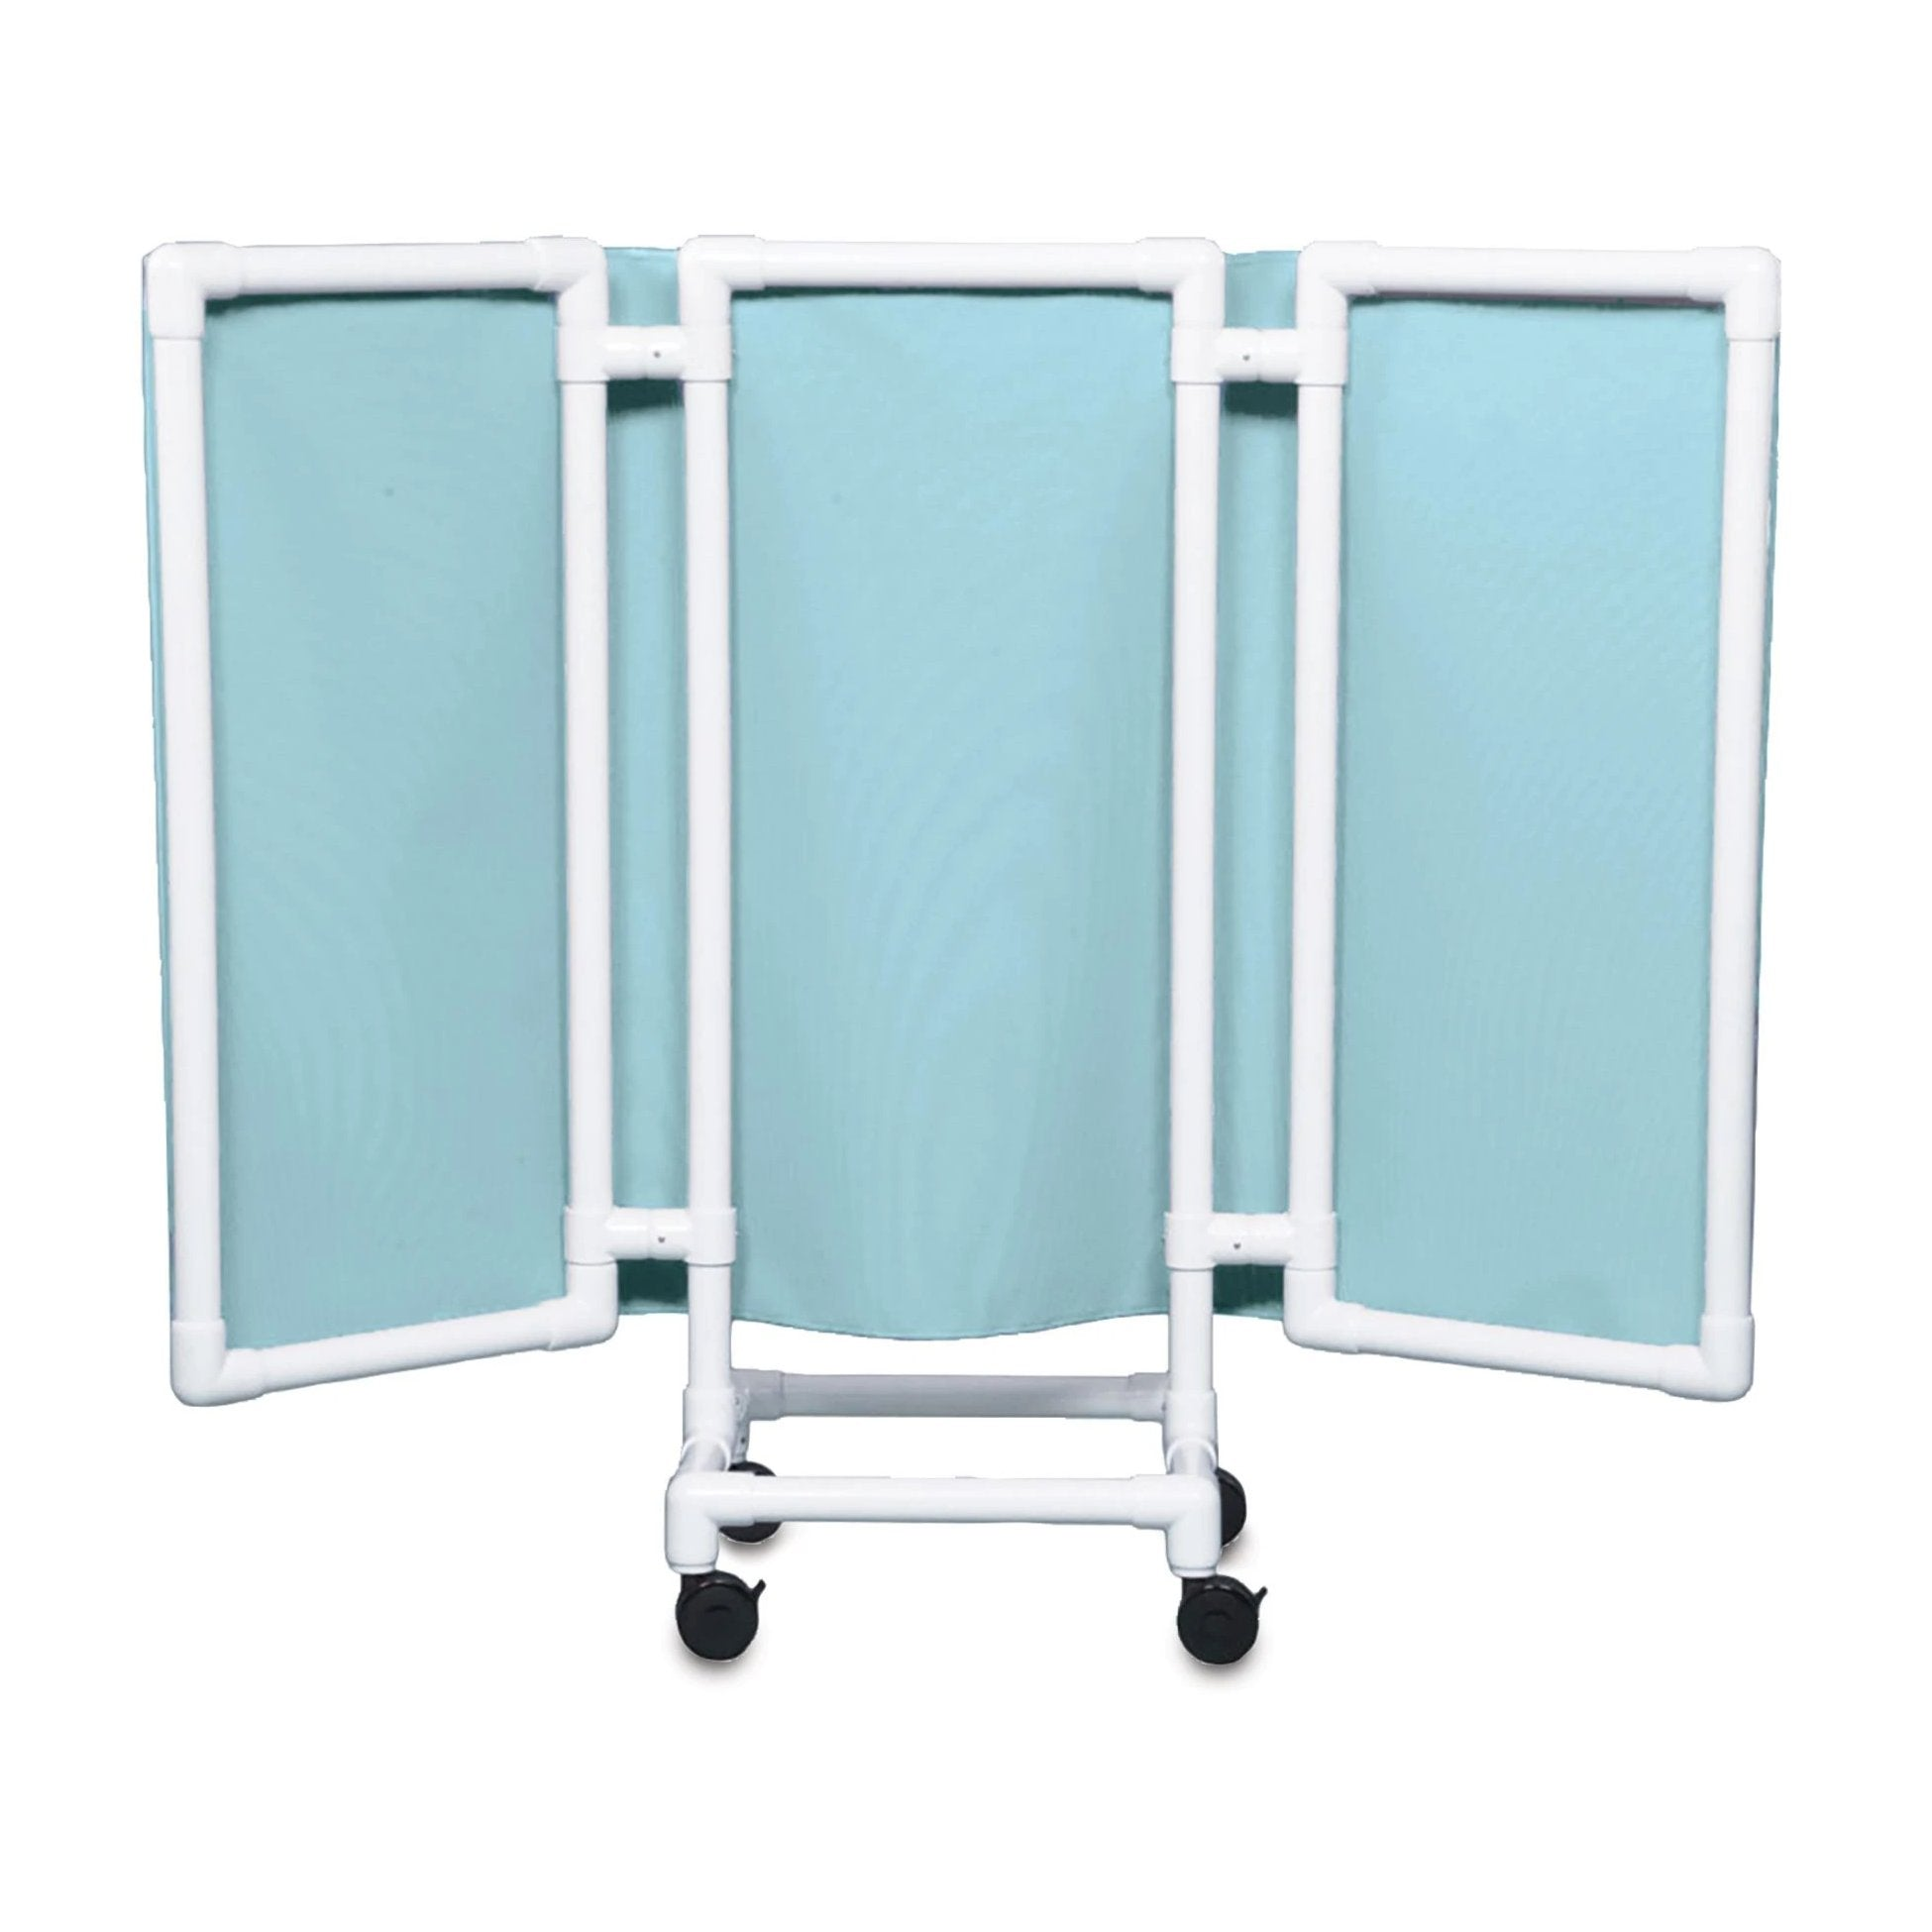 Antimicrobial Privacy Screens